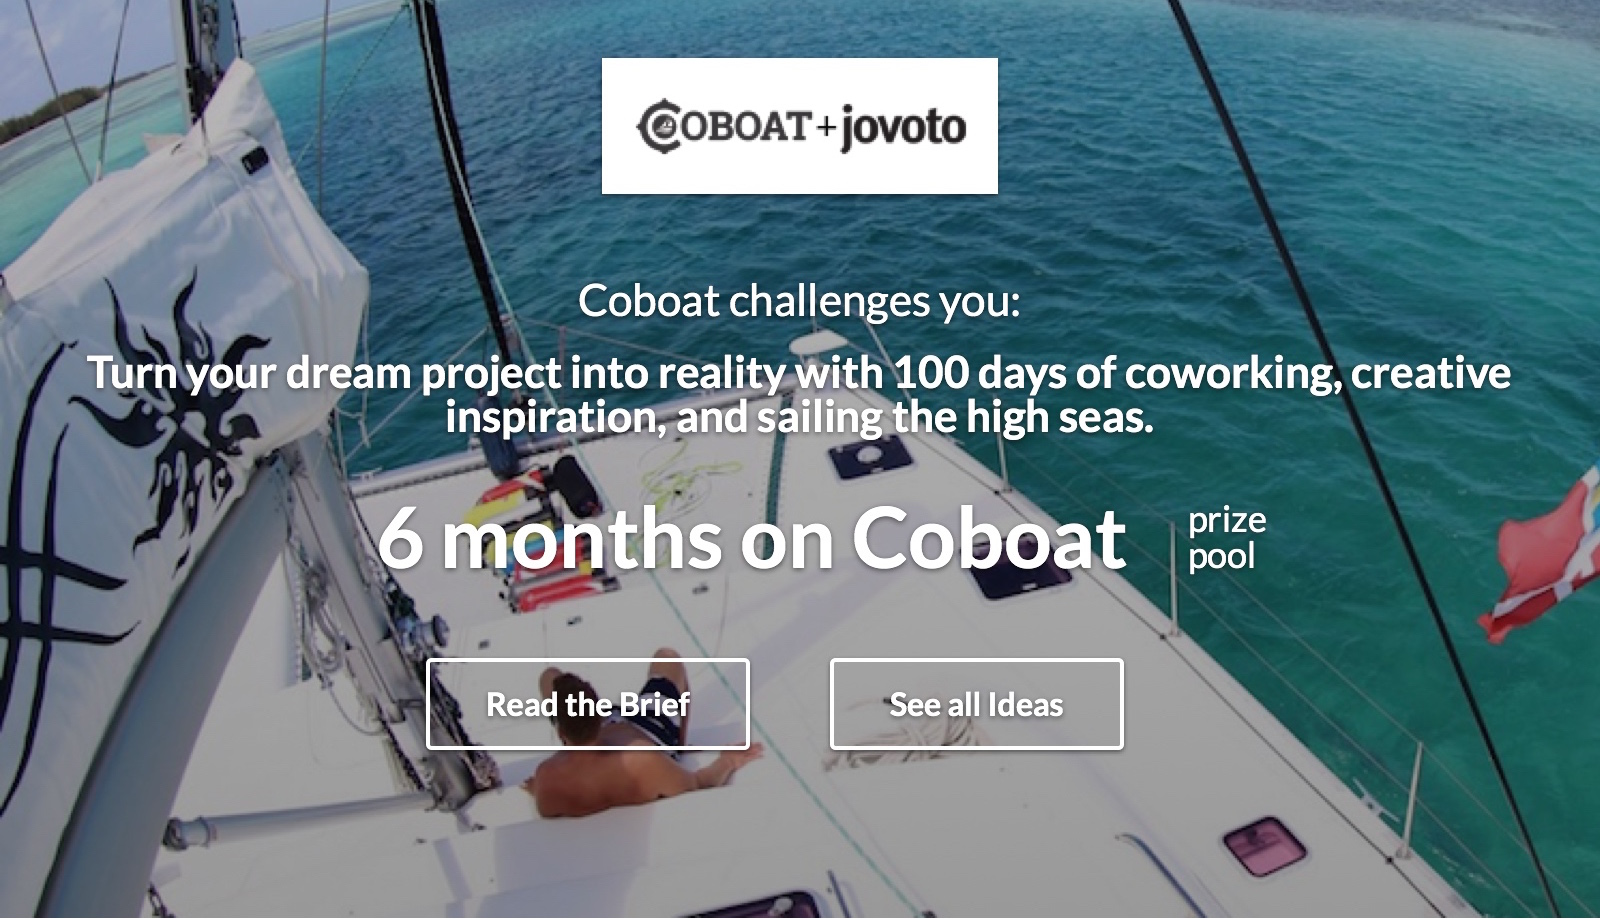 Turn your dream project into reality with 100 days of coworking, creative inspiration, and sailing the high seas.